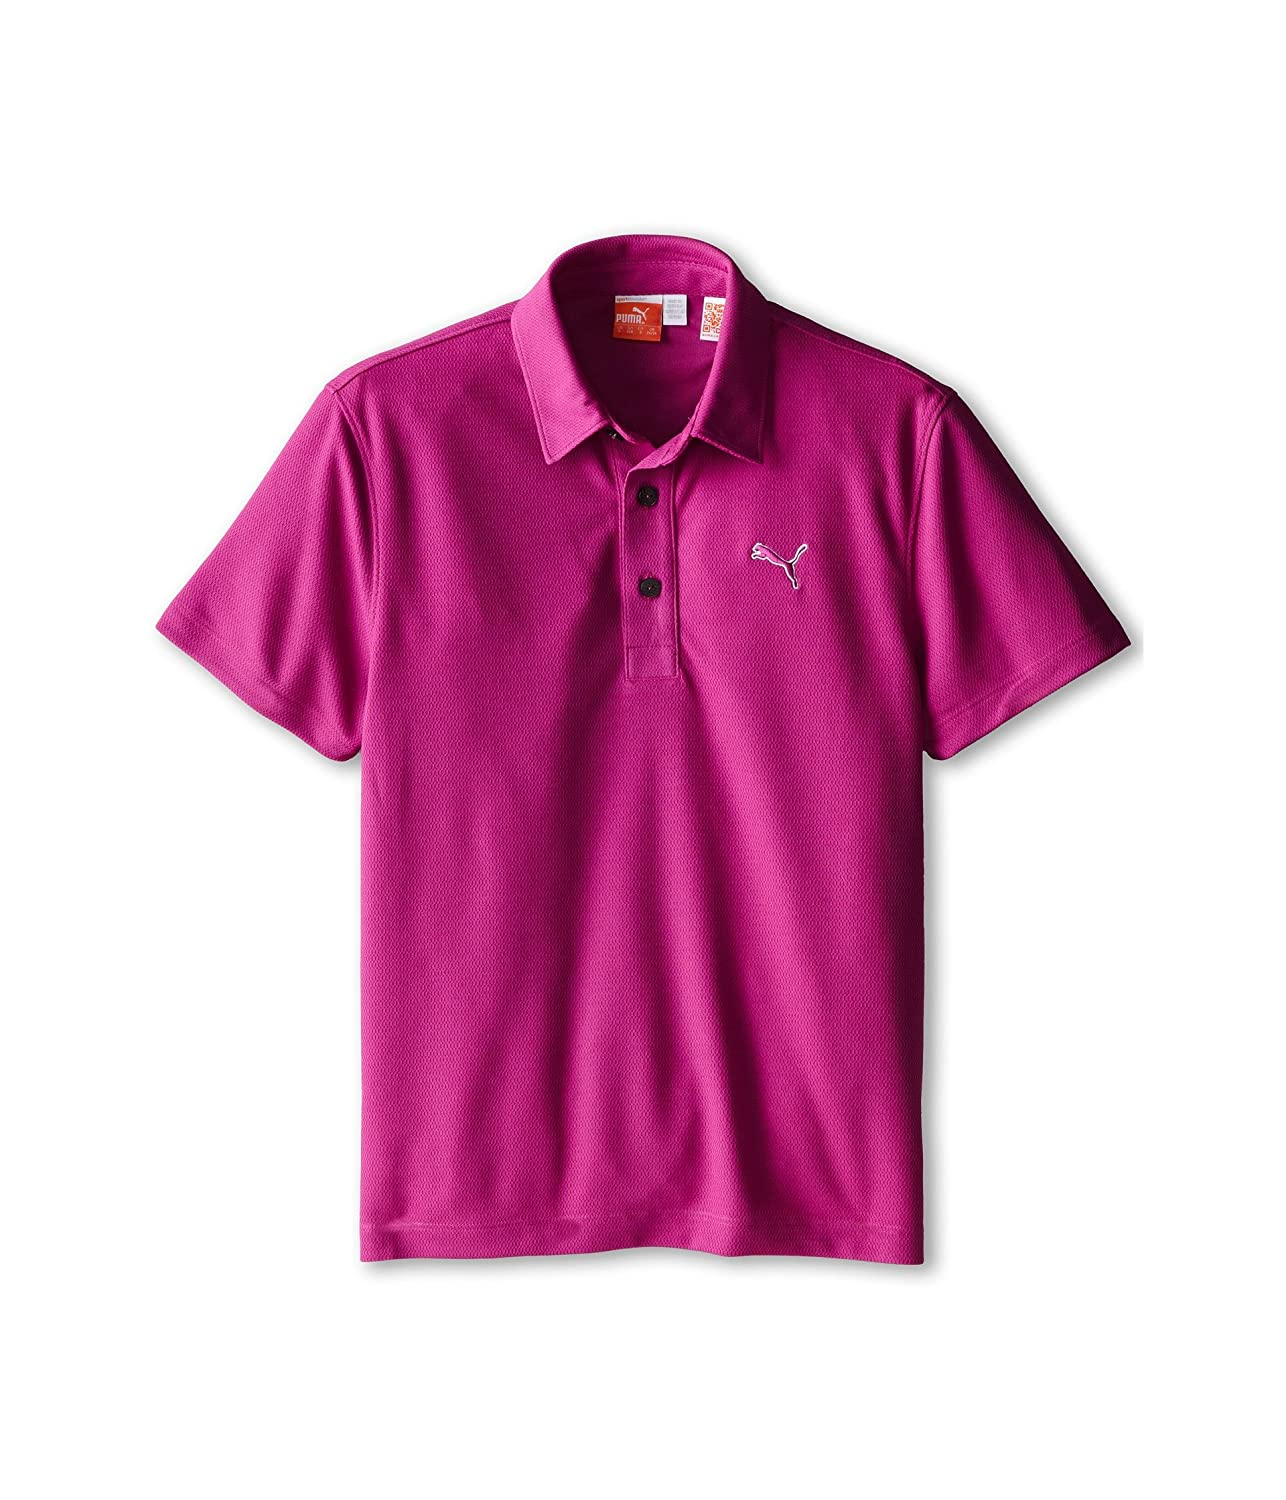 [プーマ] PUMA Golf Kids ボーイズ Tech Polo (Big Kids) トップス [並行輸入品] XL (18-20 Big Kids) Vivid Viola B01D2CYYPE